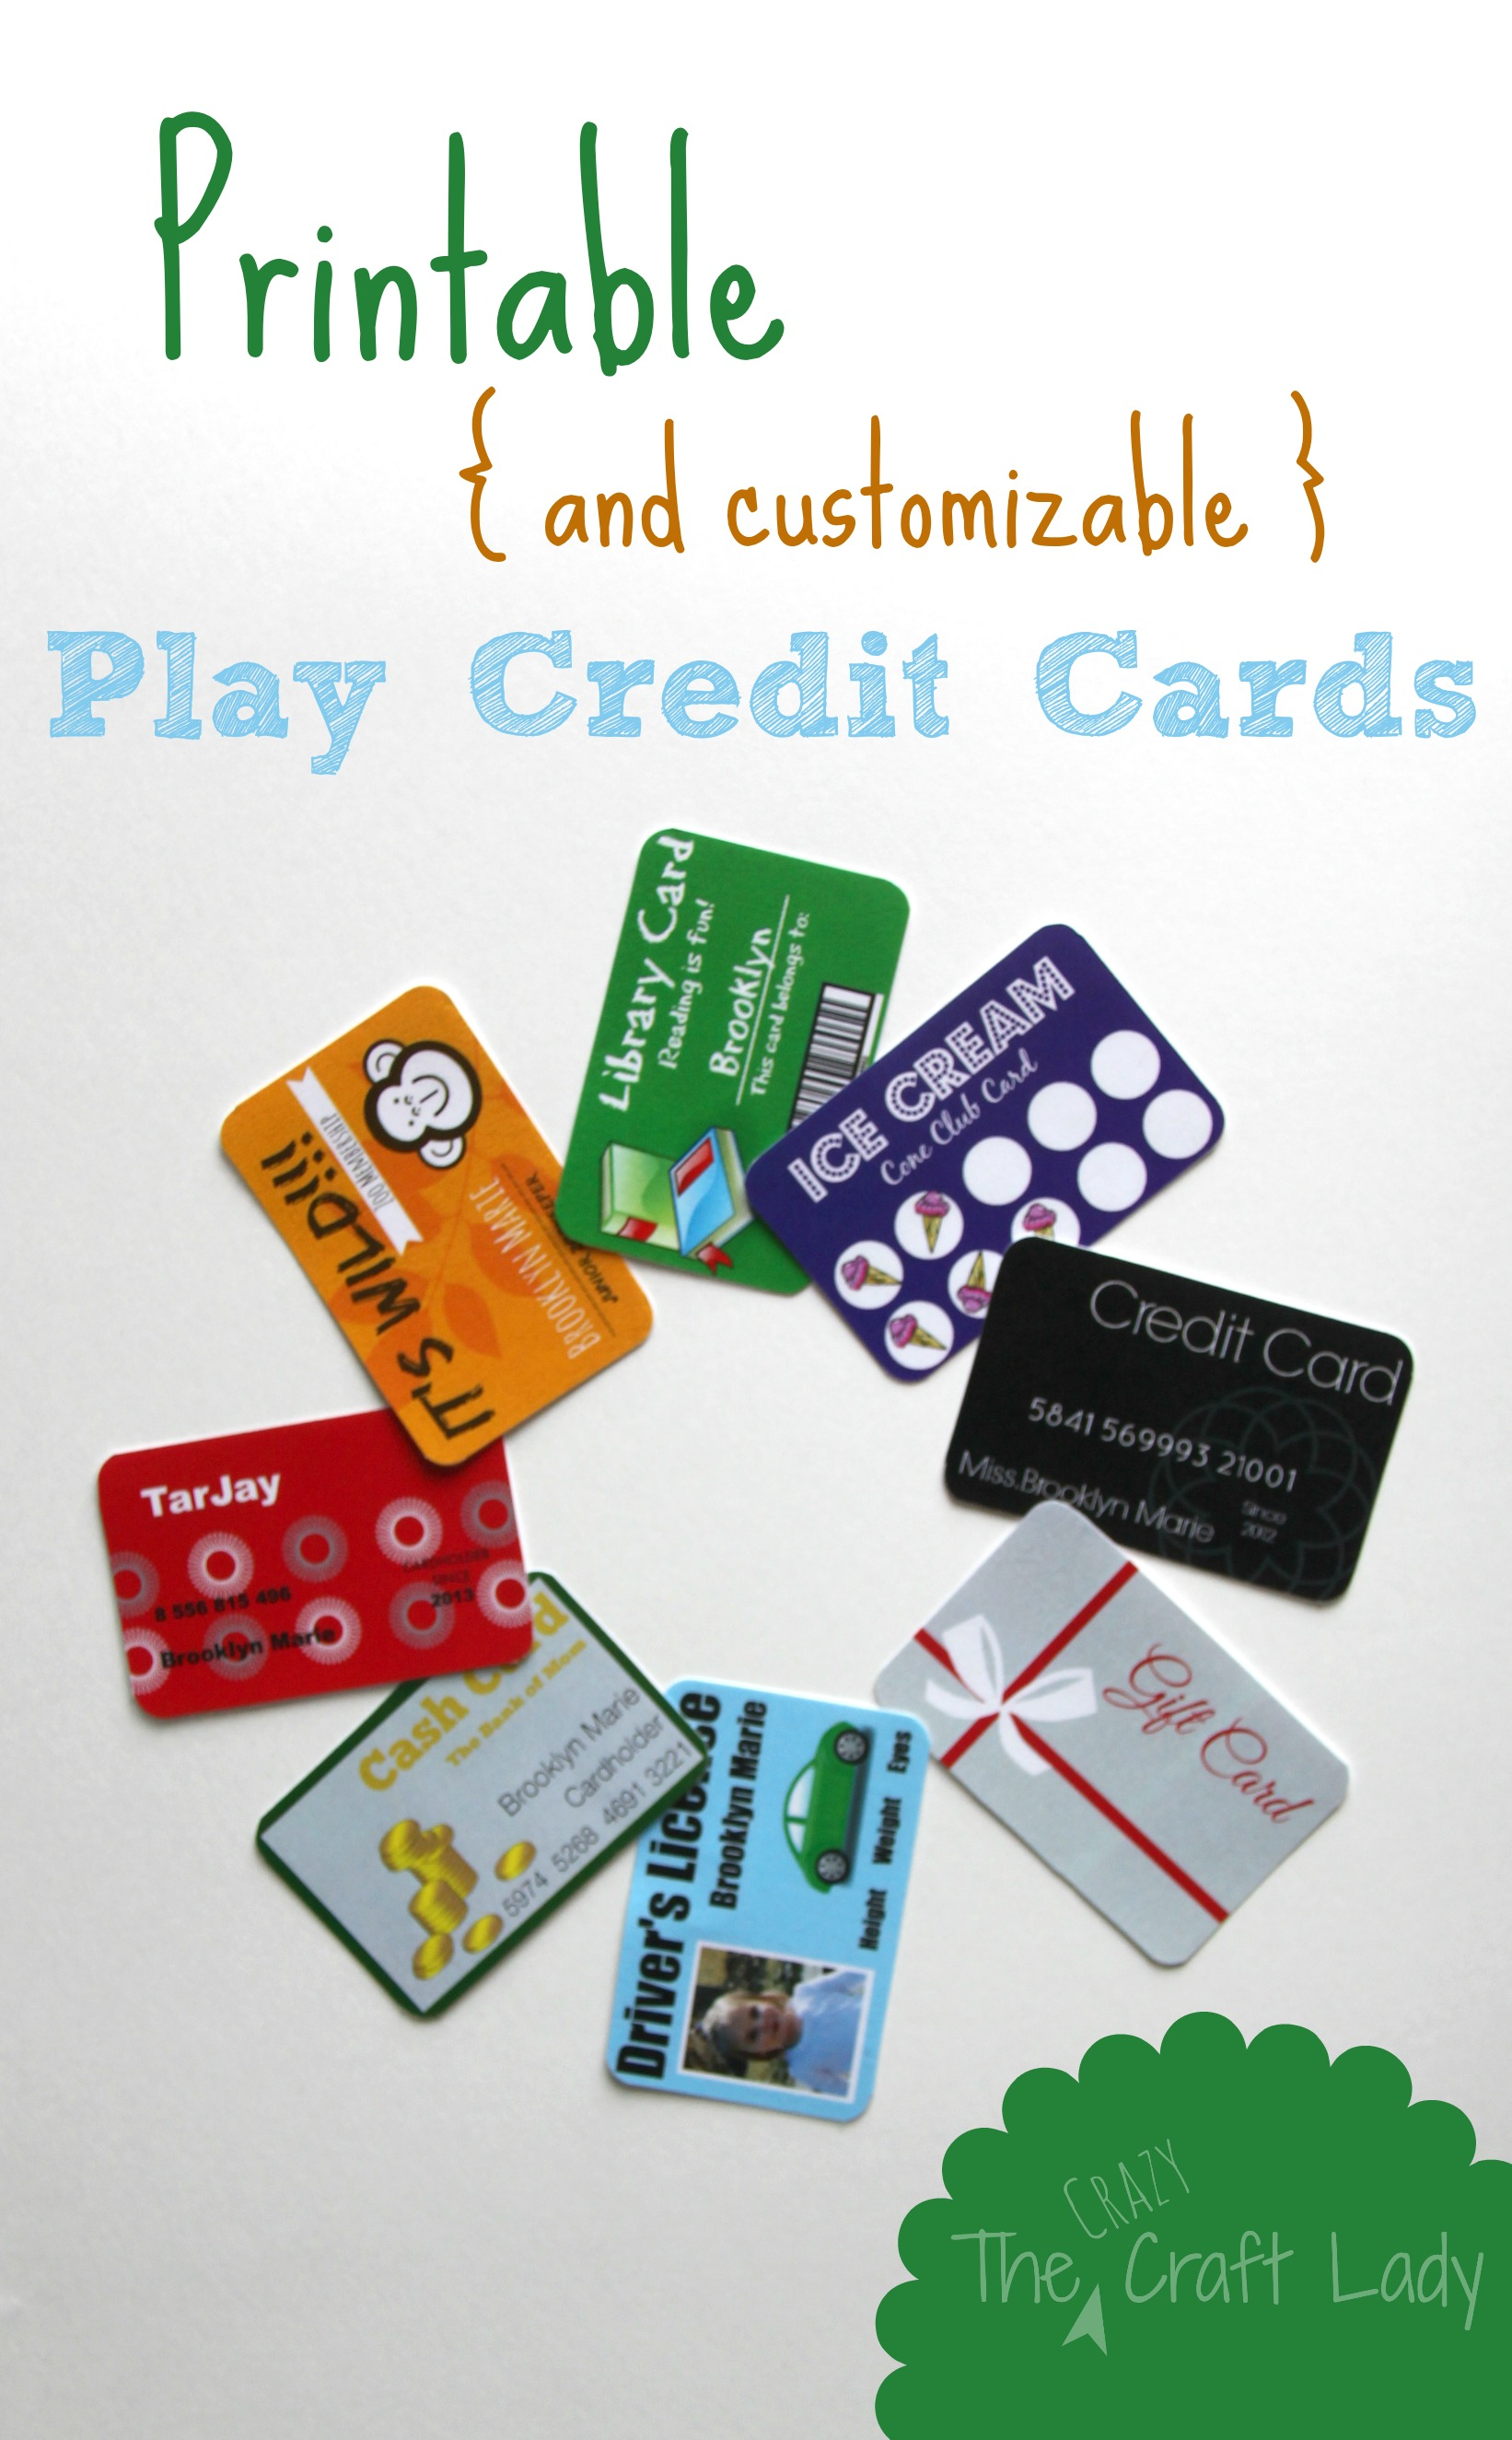 should teenagers have credit cards Download current - debit card for teens and enjoy it on your iphone, ipad, and   automate allowance, get spending notifications, create and reward chores,   regarding putting in the right amount of money, you should be able to edit the.